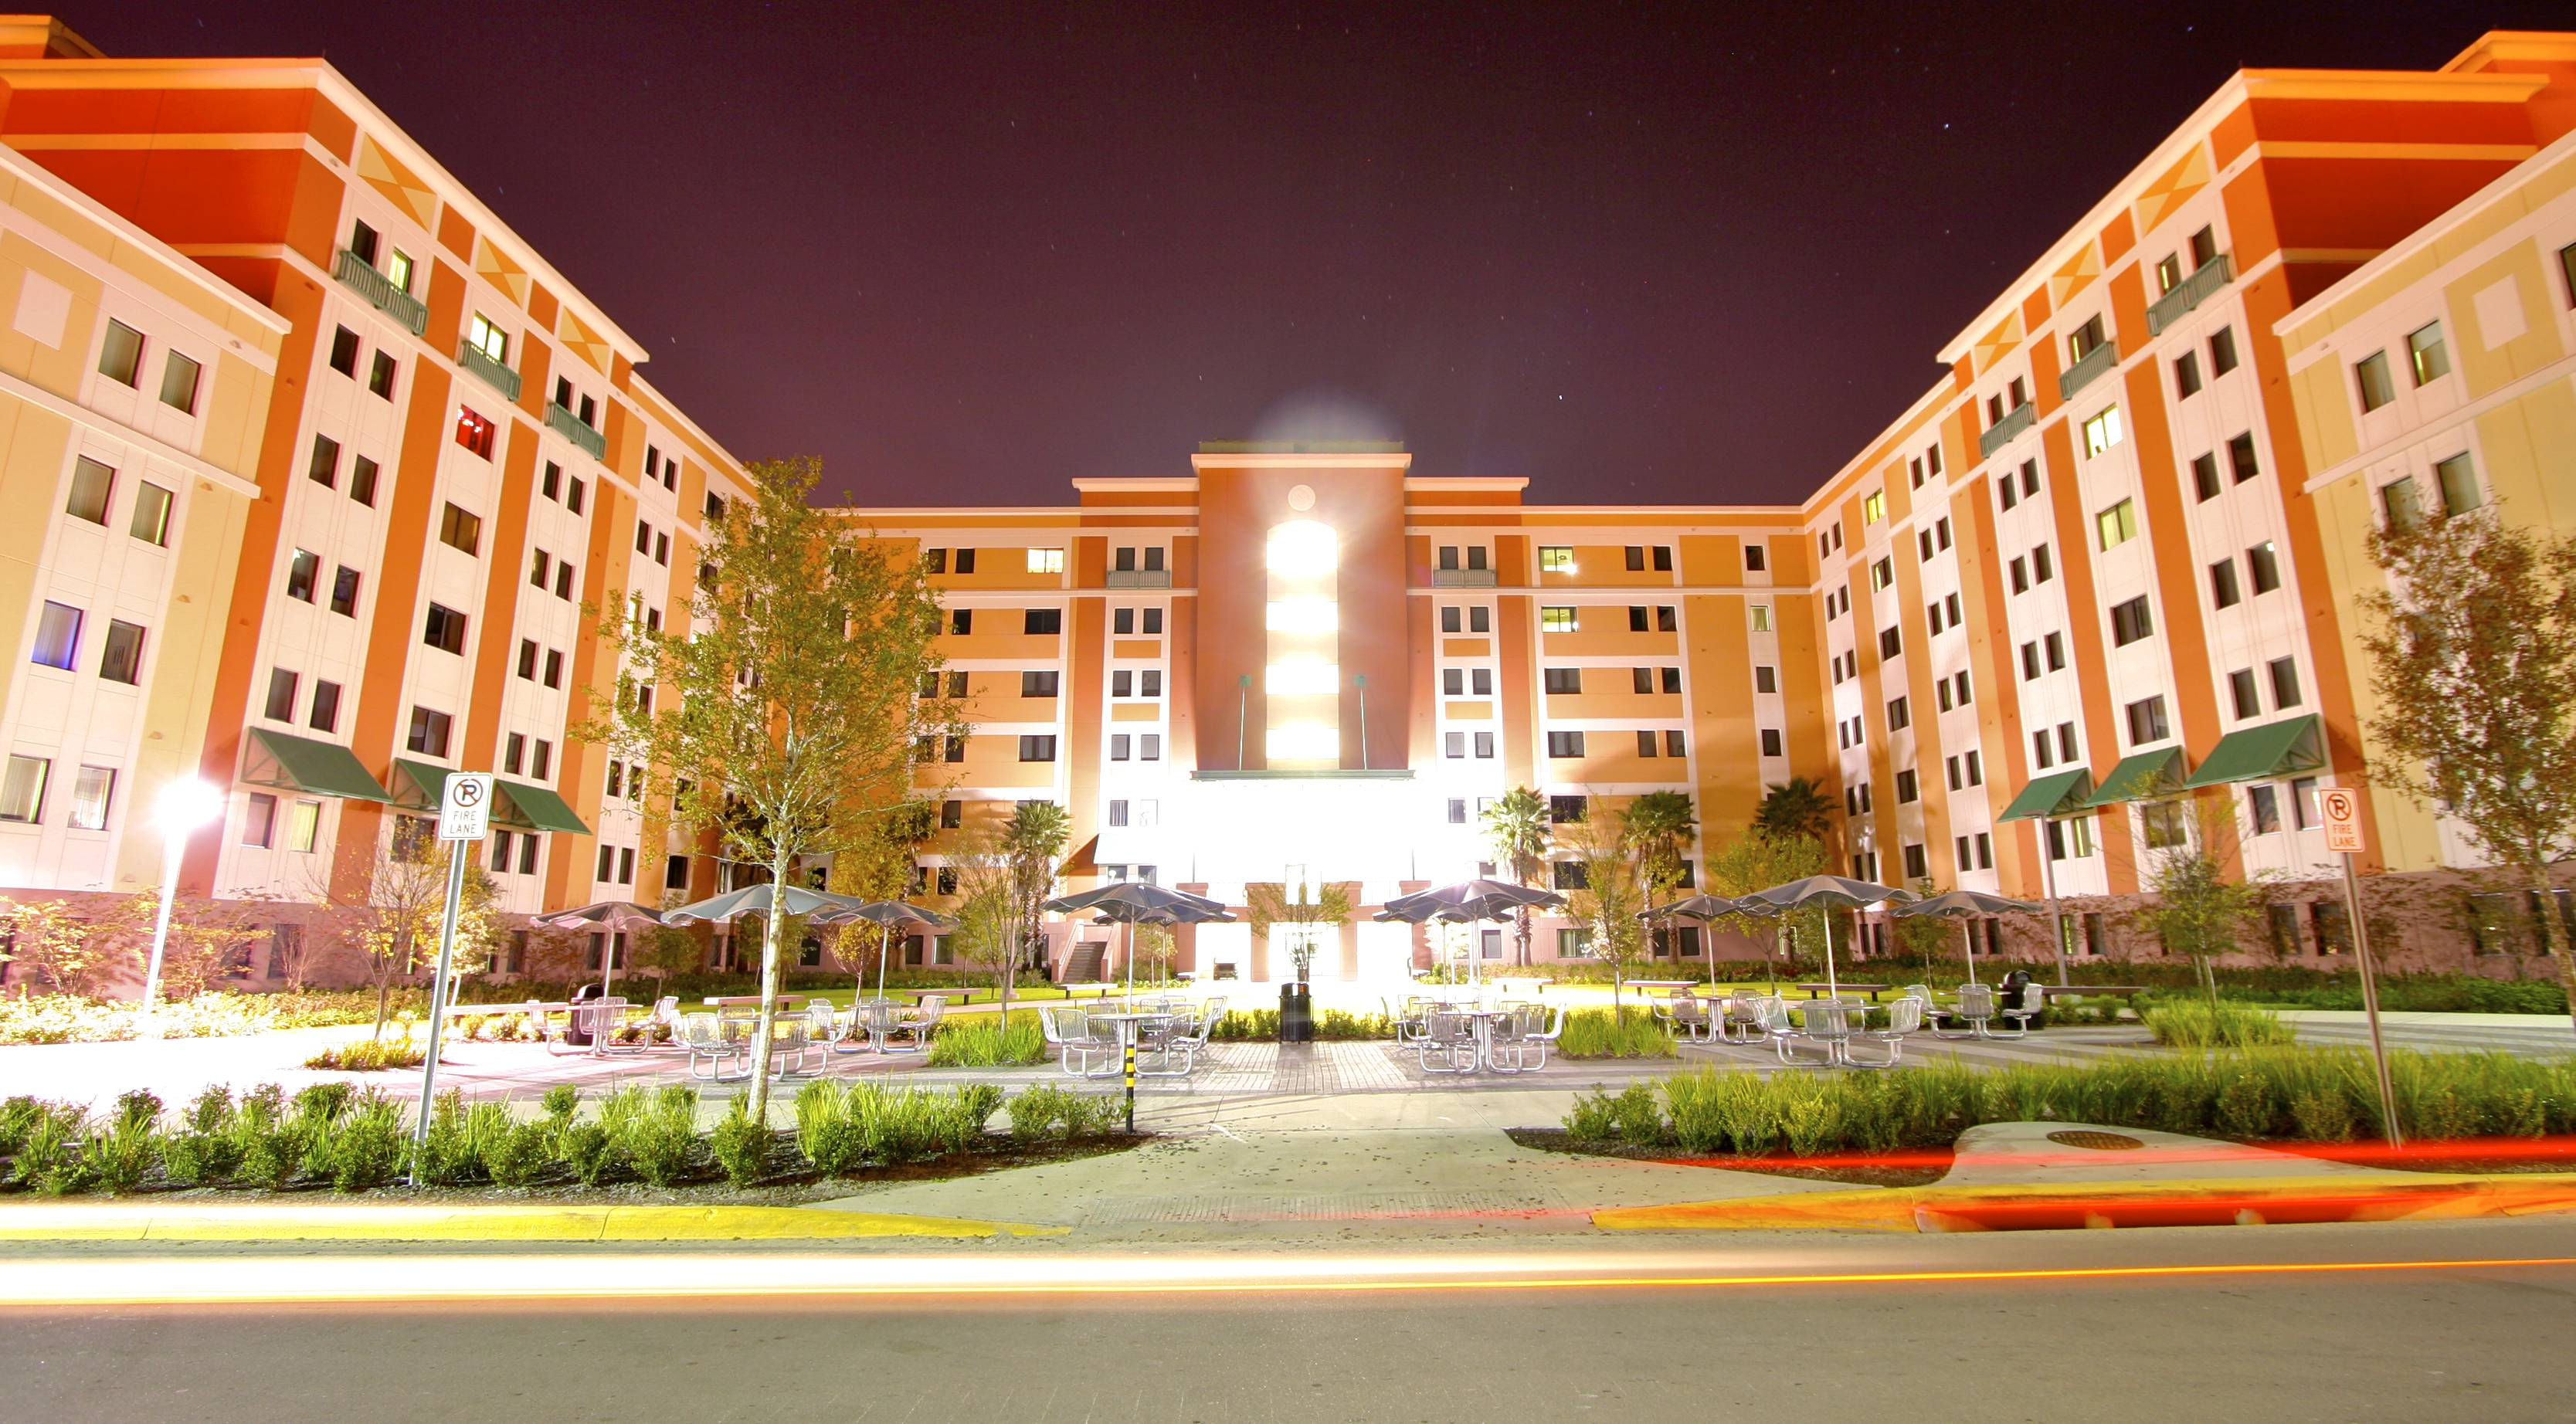 University of central florida student housing wikiwand for Best housing at uf